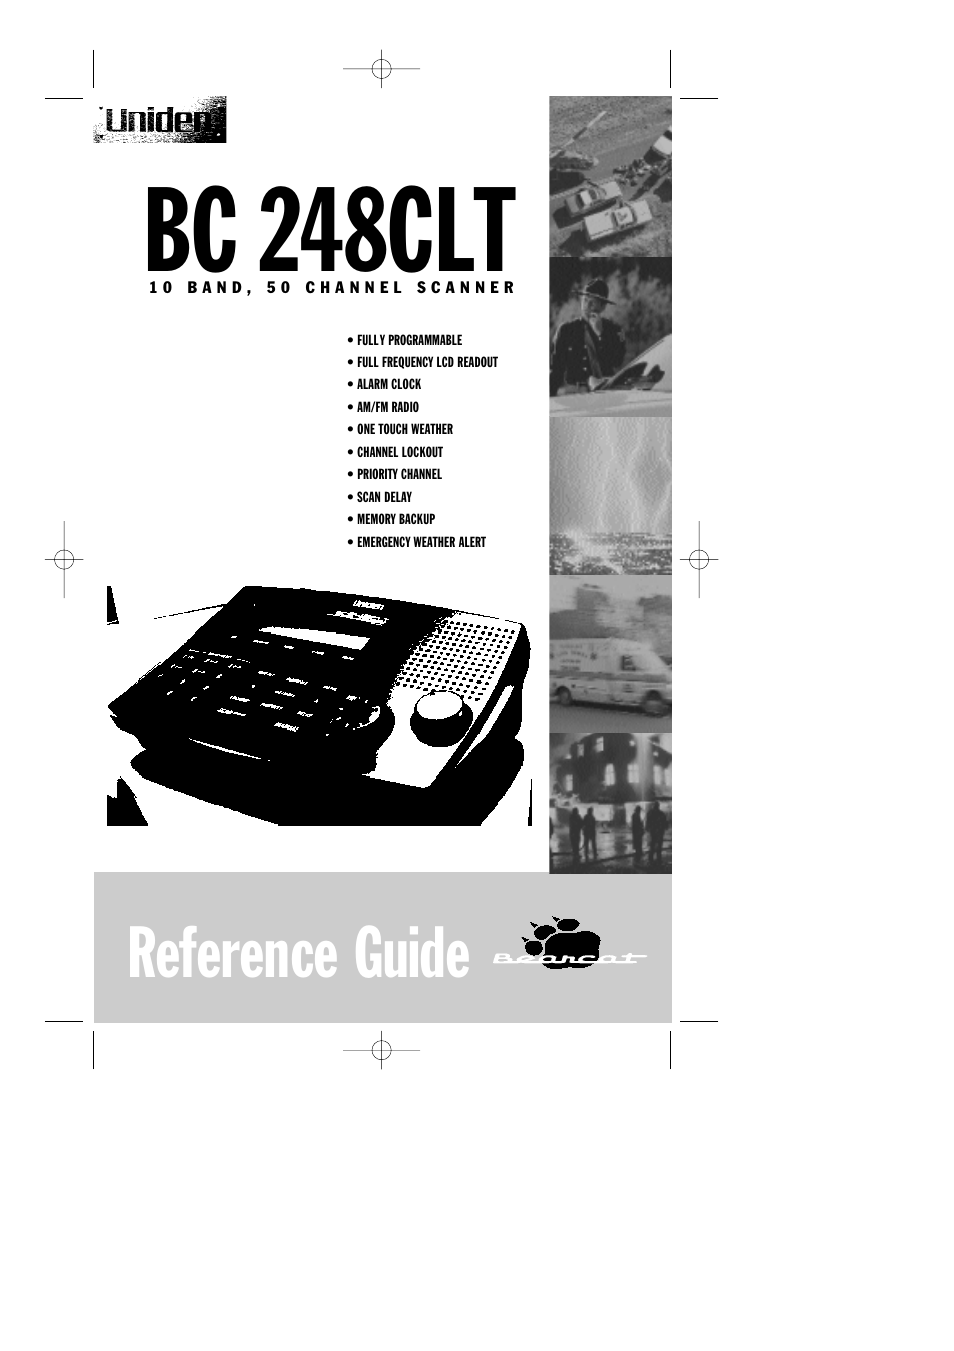 uniden bc248clt user manual 42 pages rh manualsdir com Uniden Digital Answering System Manual Uniden Answering Machine Manual